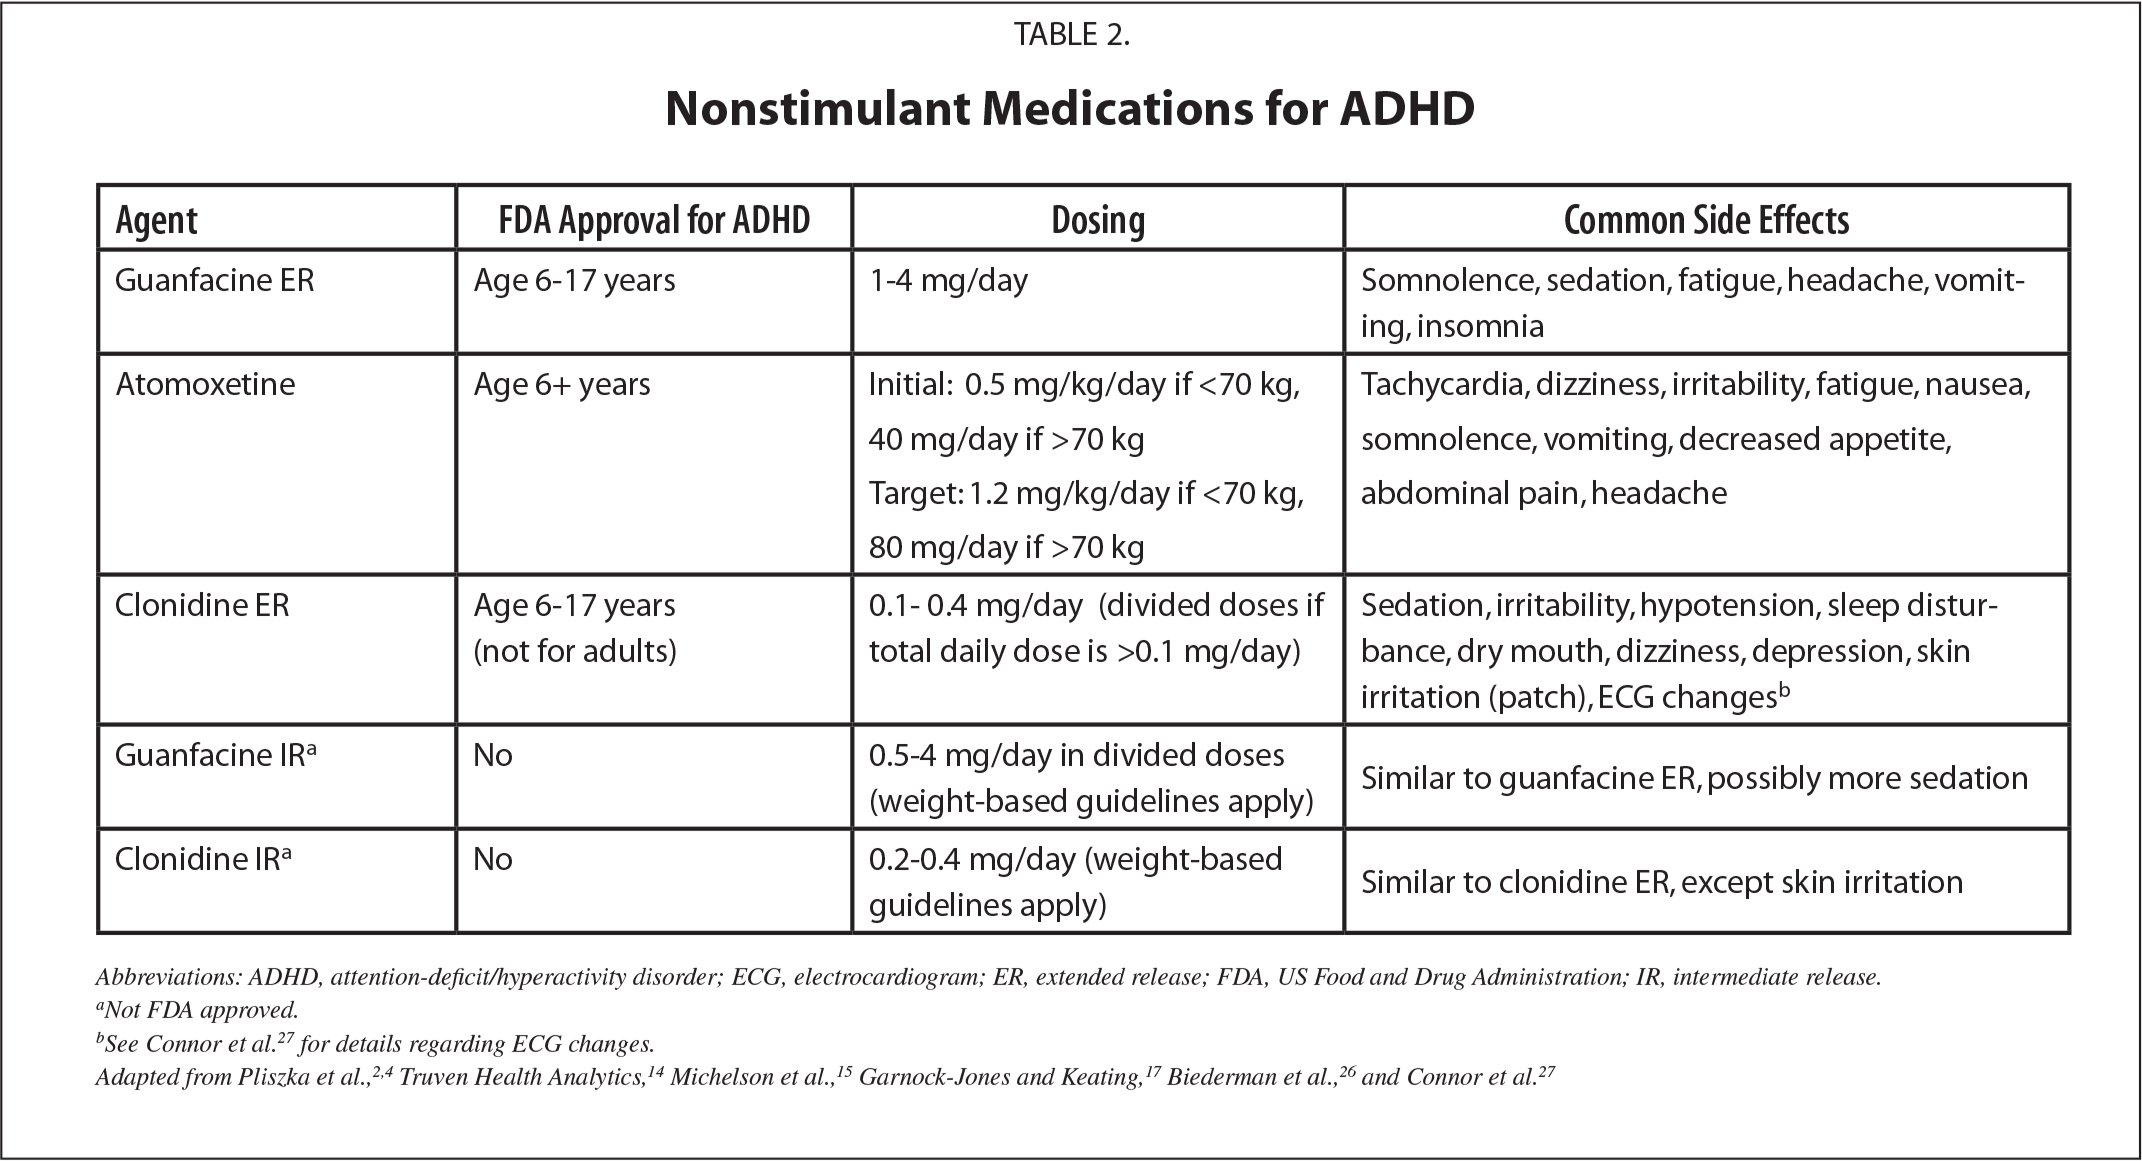 Nonstimulant Medications for ADHD